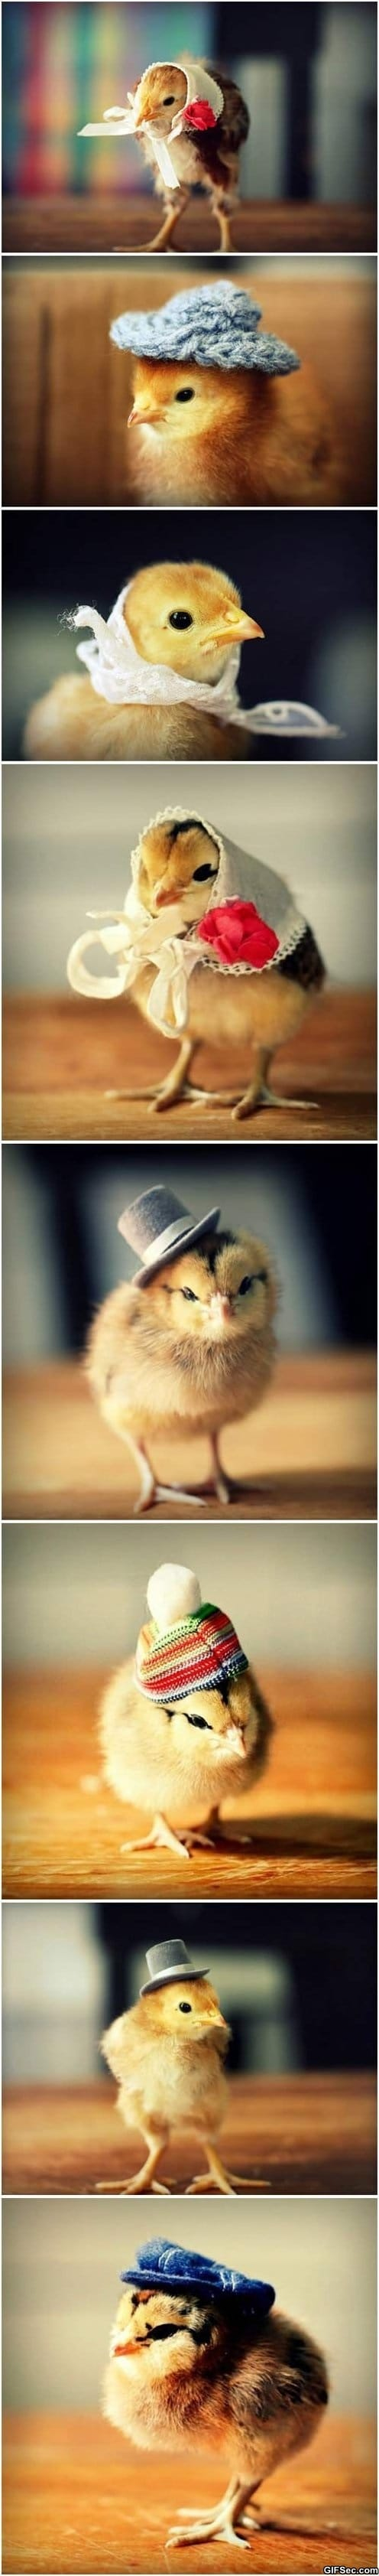 funny-pictures-chicks-in-hats